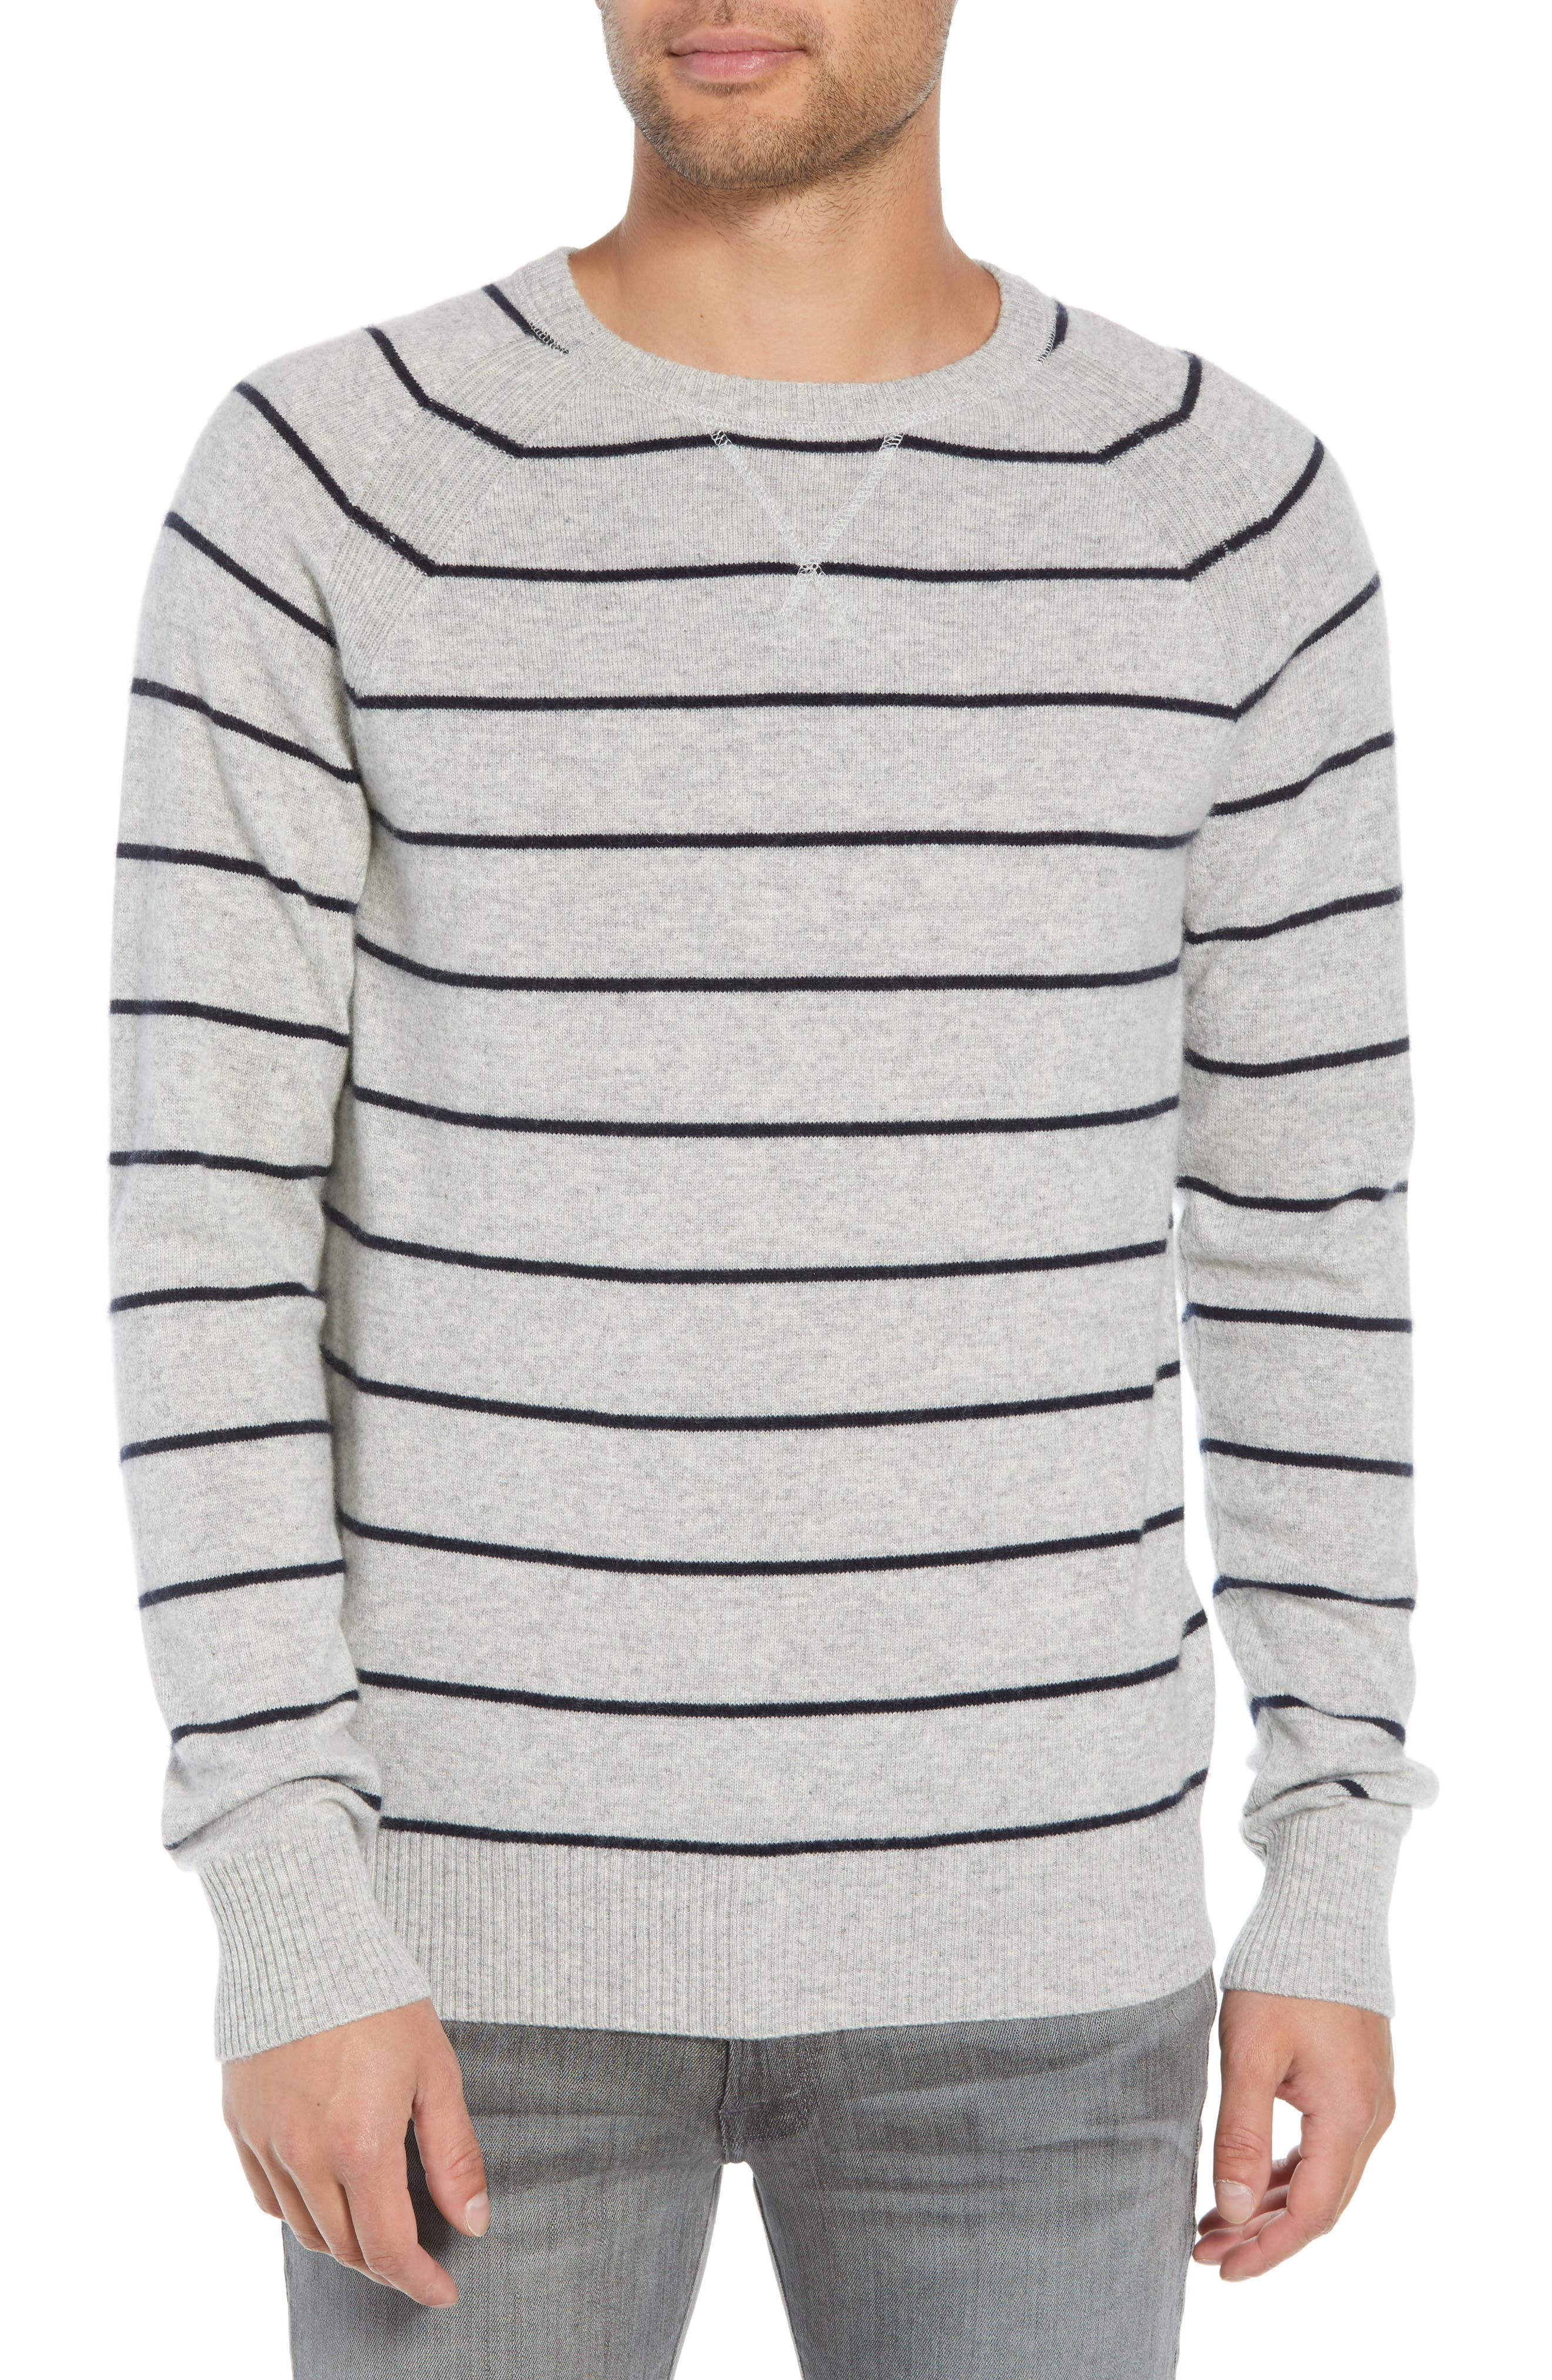 Caleb Stripe Cashmere Sweater,                             Main thumbnail 1, color,                             LIGHT HEATHER GREY/ NAVY